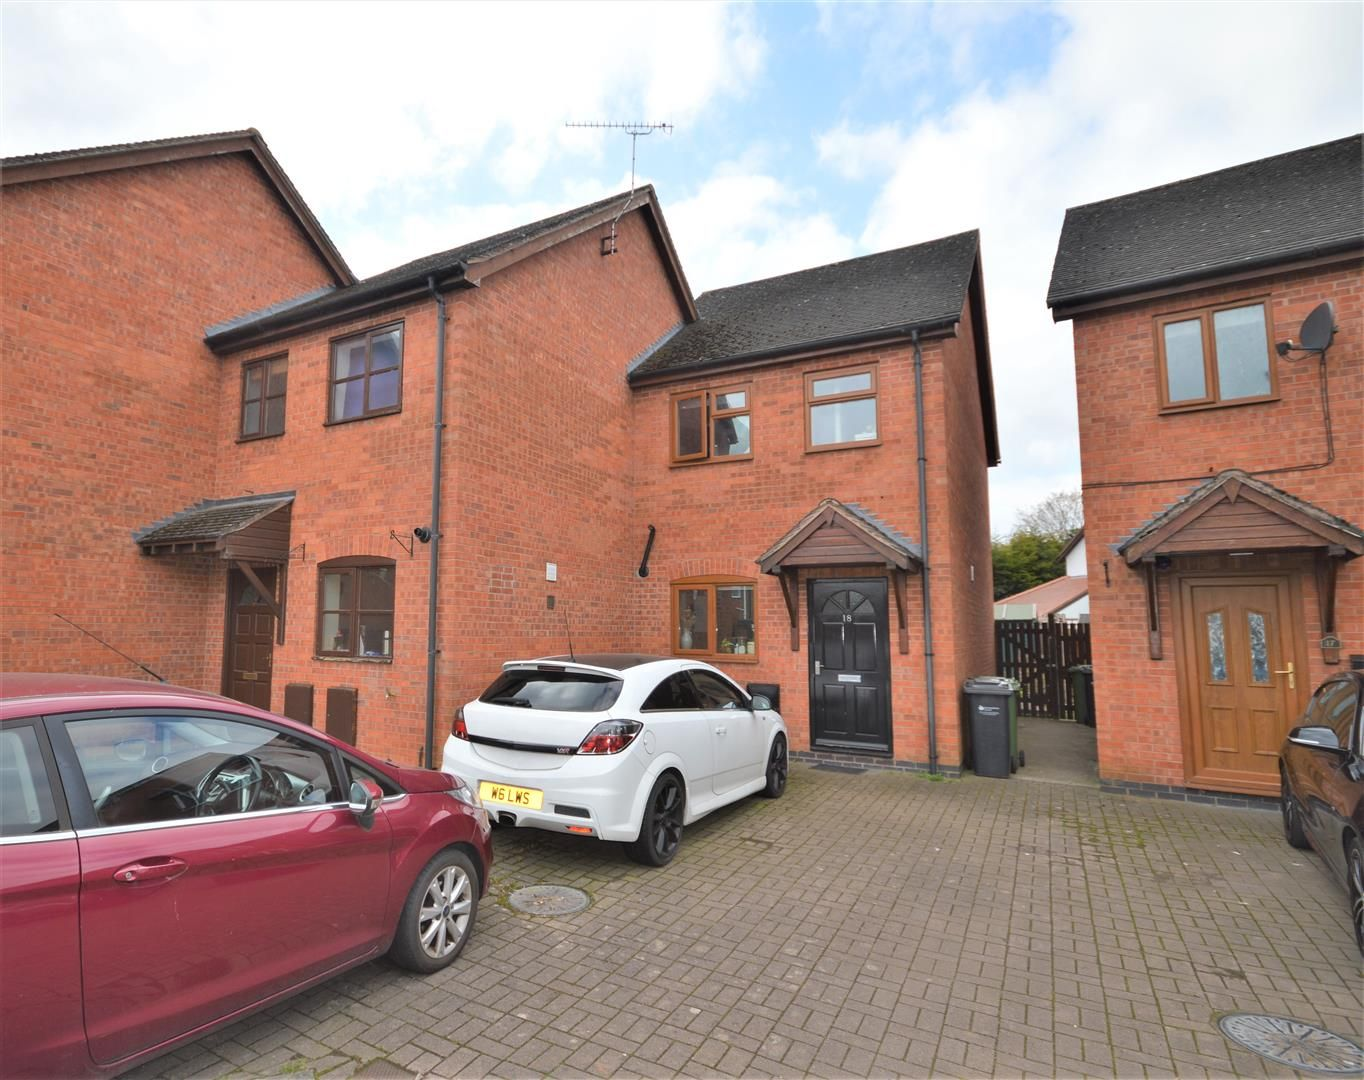 2 bed end of terrace for sale in Lower Bullingham - Property Image 1